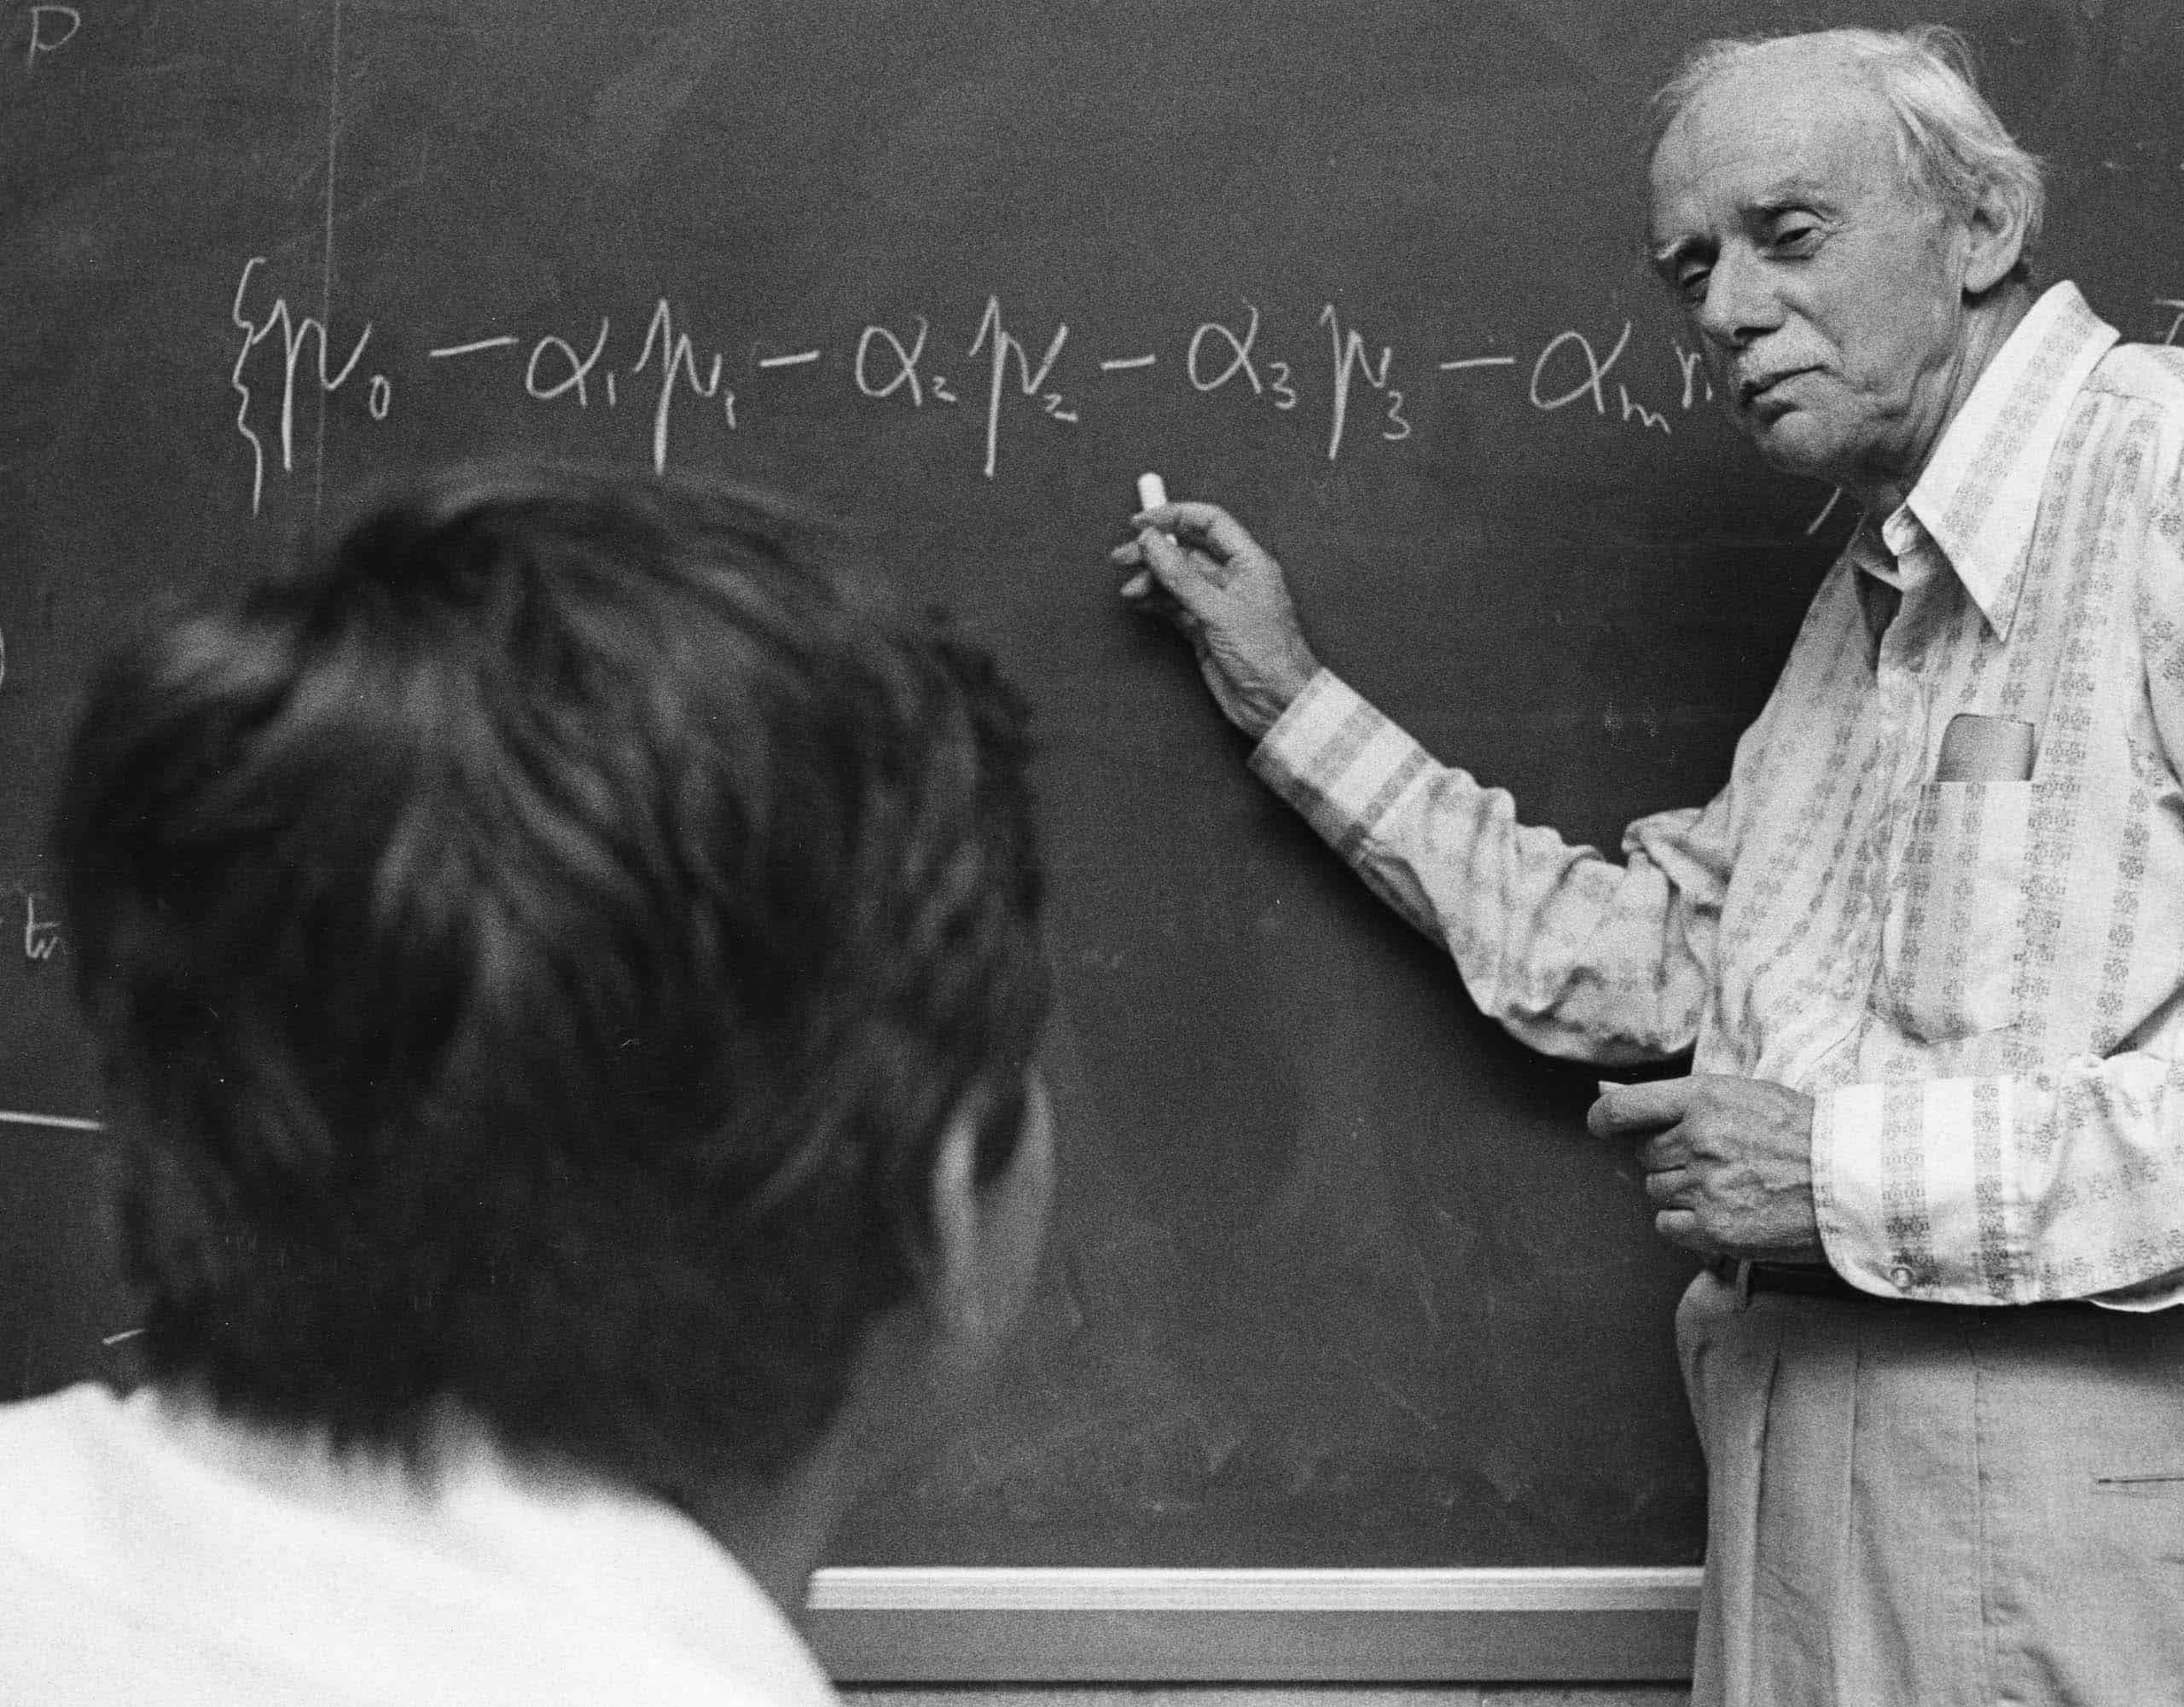 Paul Dirac - Book on Quantum Genius Paul Dirac Offers an Accessible and Engaging Introduction to the Physicist's Life and Work